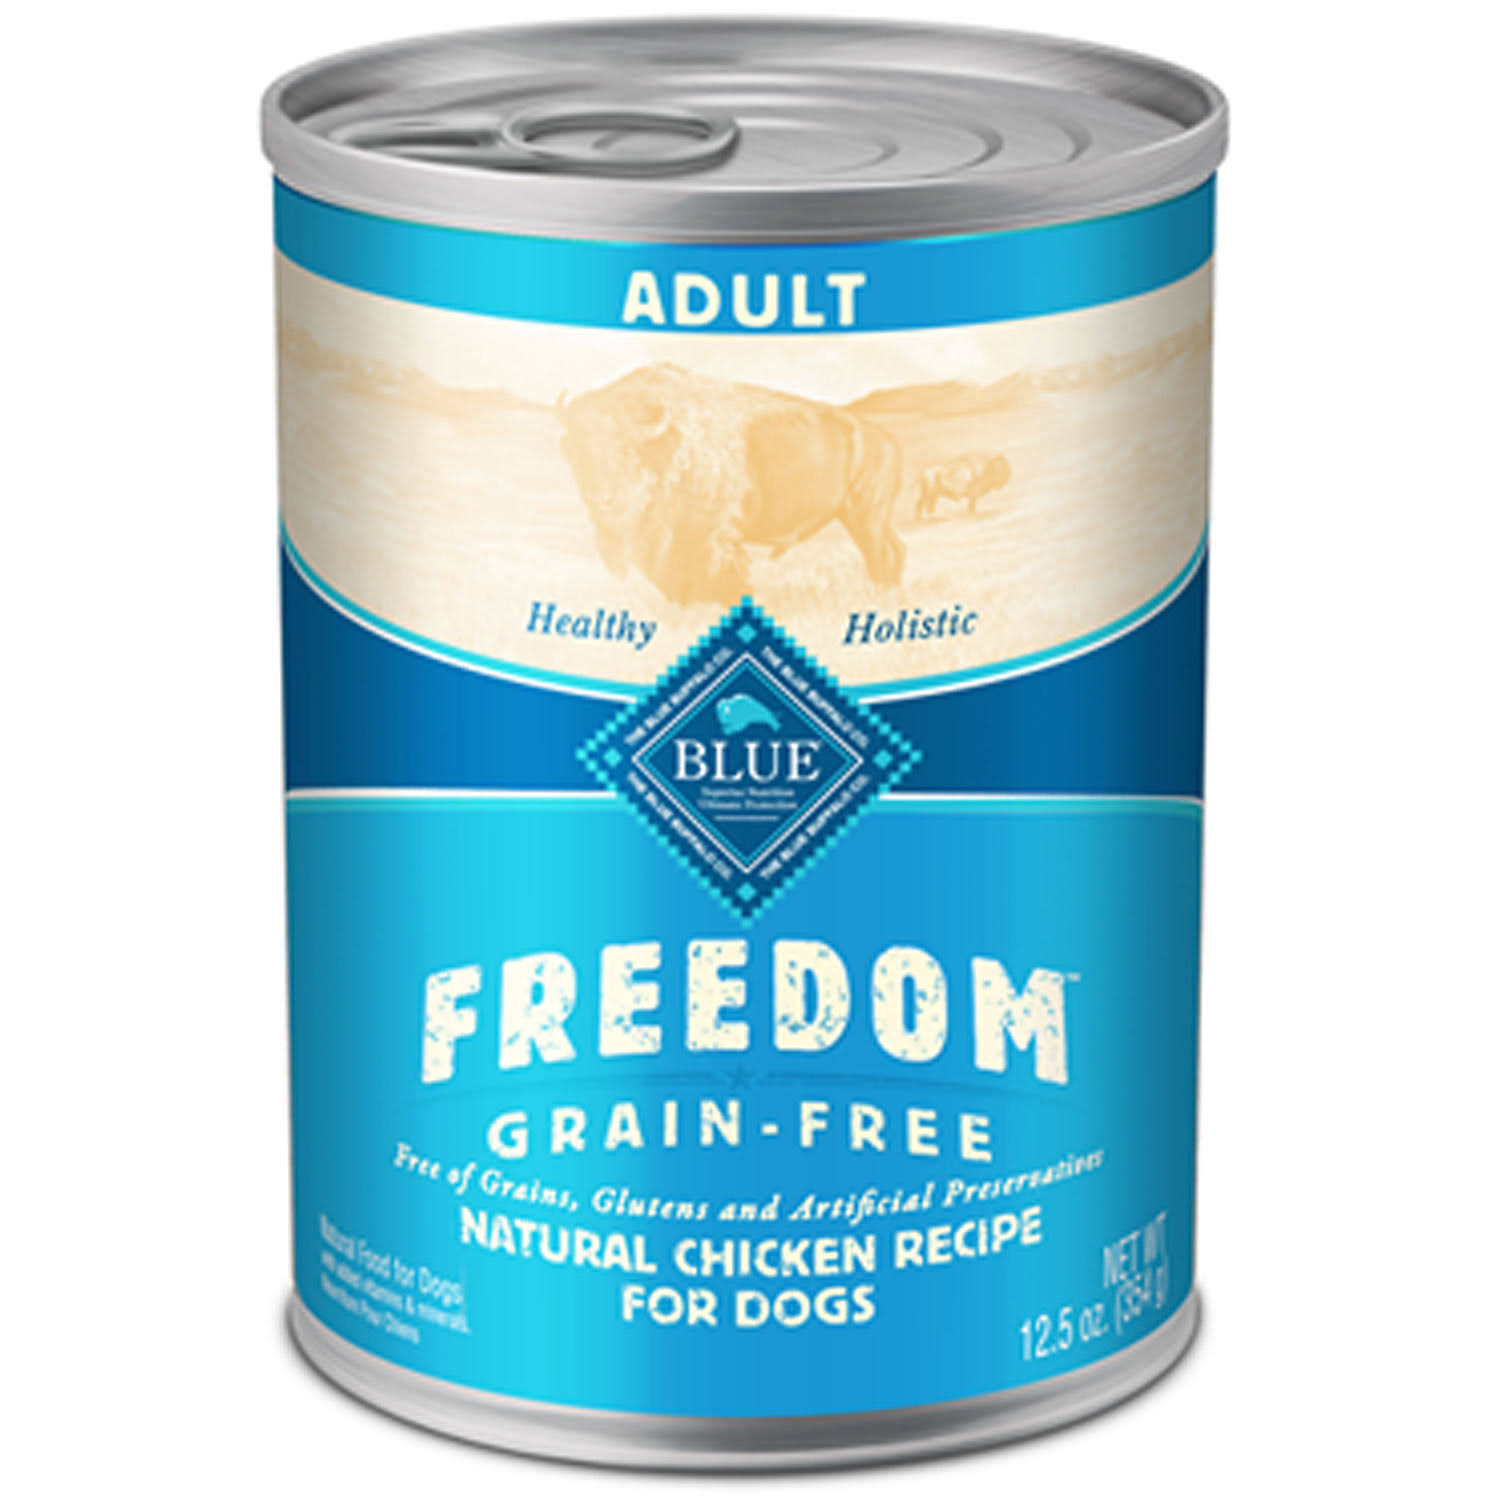 Blue Buffalo Freedom Grain Free for Dogs - Natural Chicken Recipe, 12.5oz